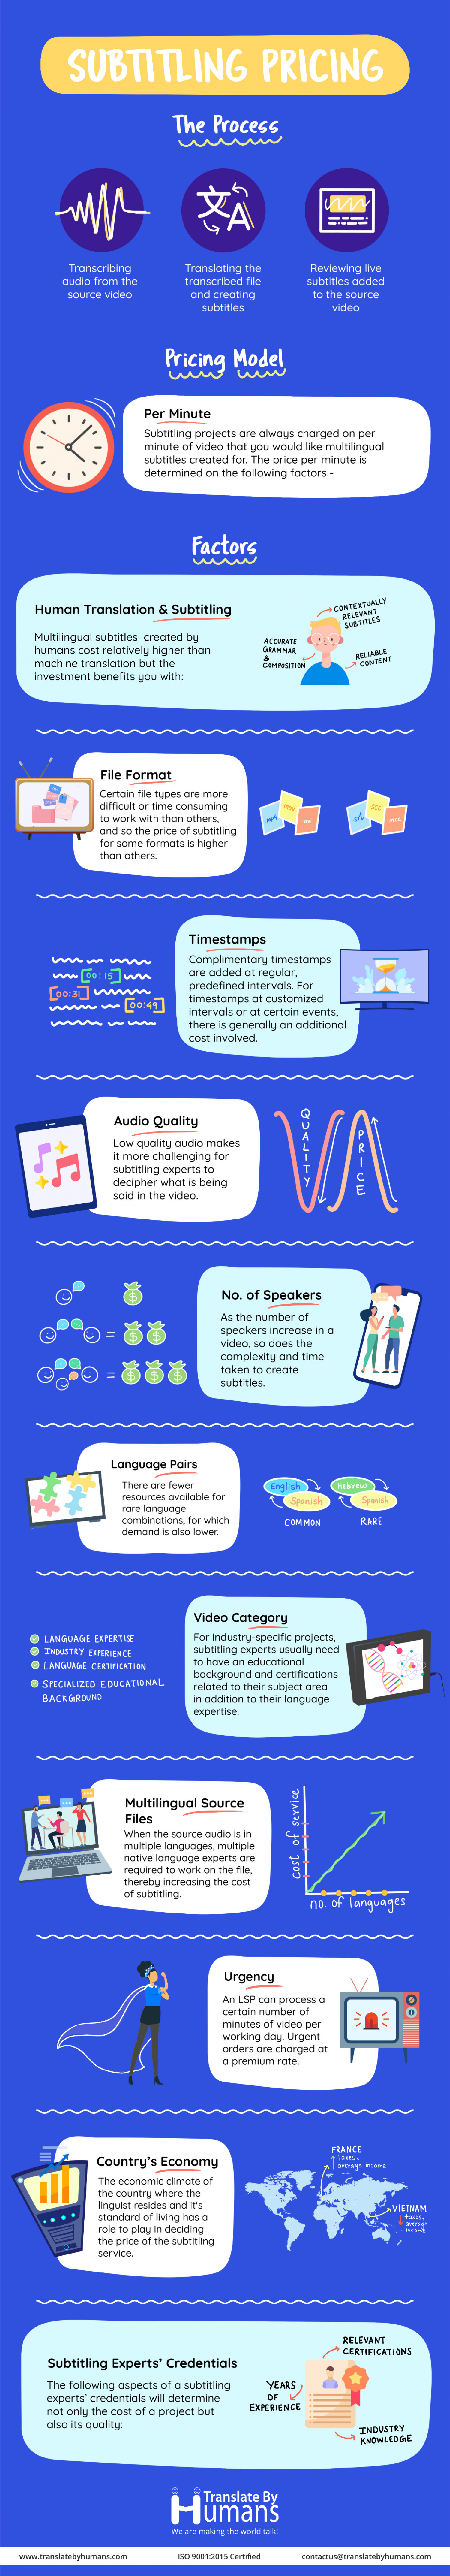 10 Factors that Affect the Pricing of Multilingual Subtitling Services Infographic